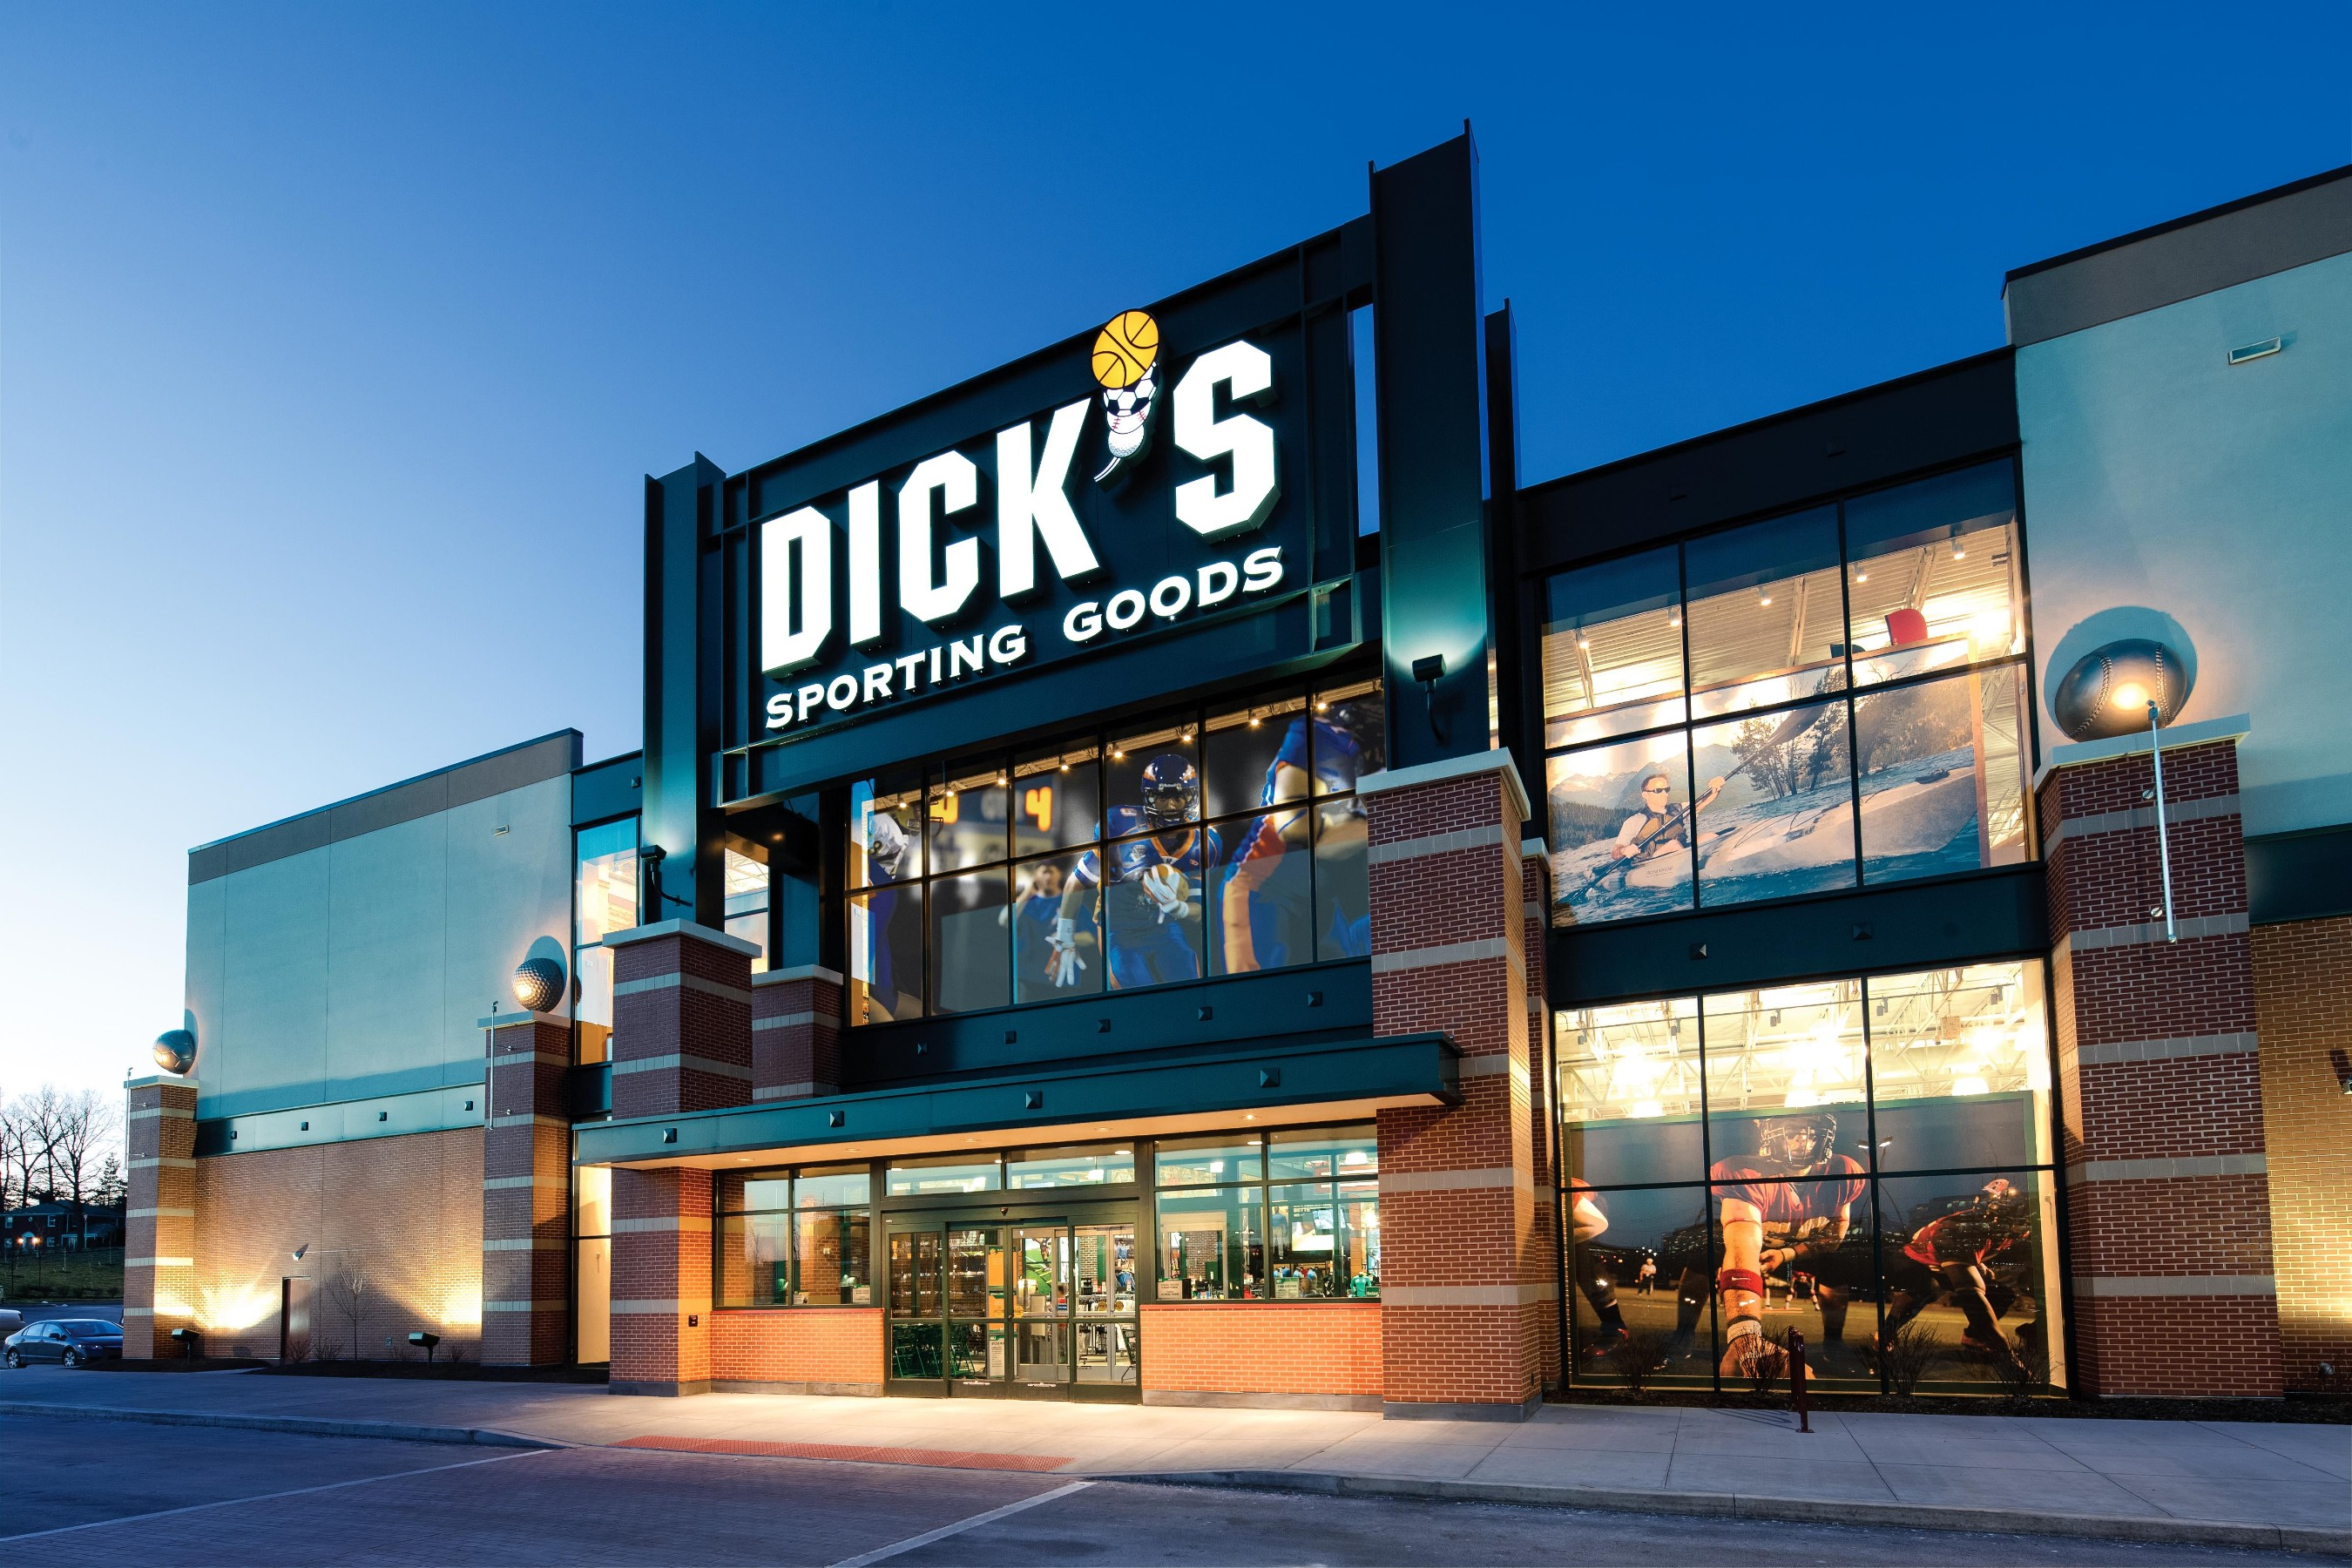 DICK'S Sporting Goods Announces Grand Opening of Three Stores in Three States in September